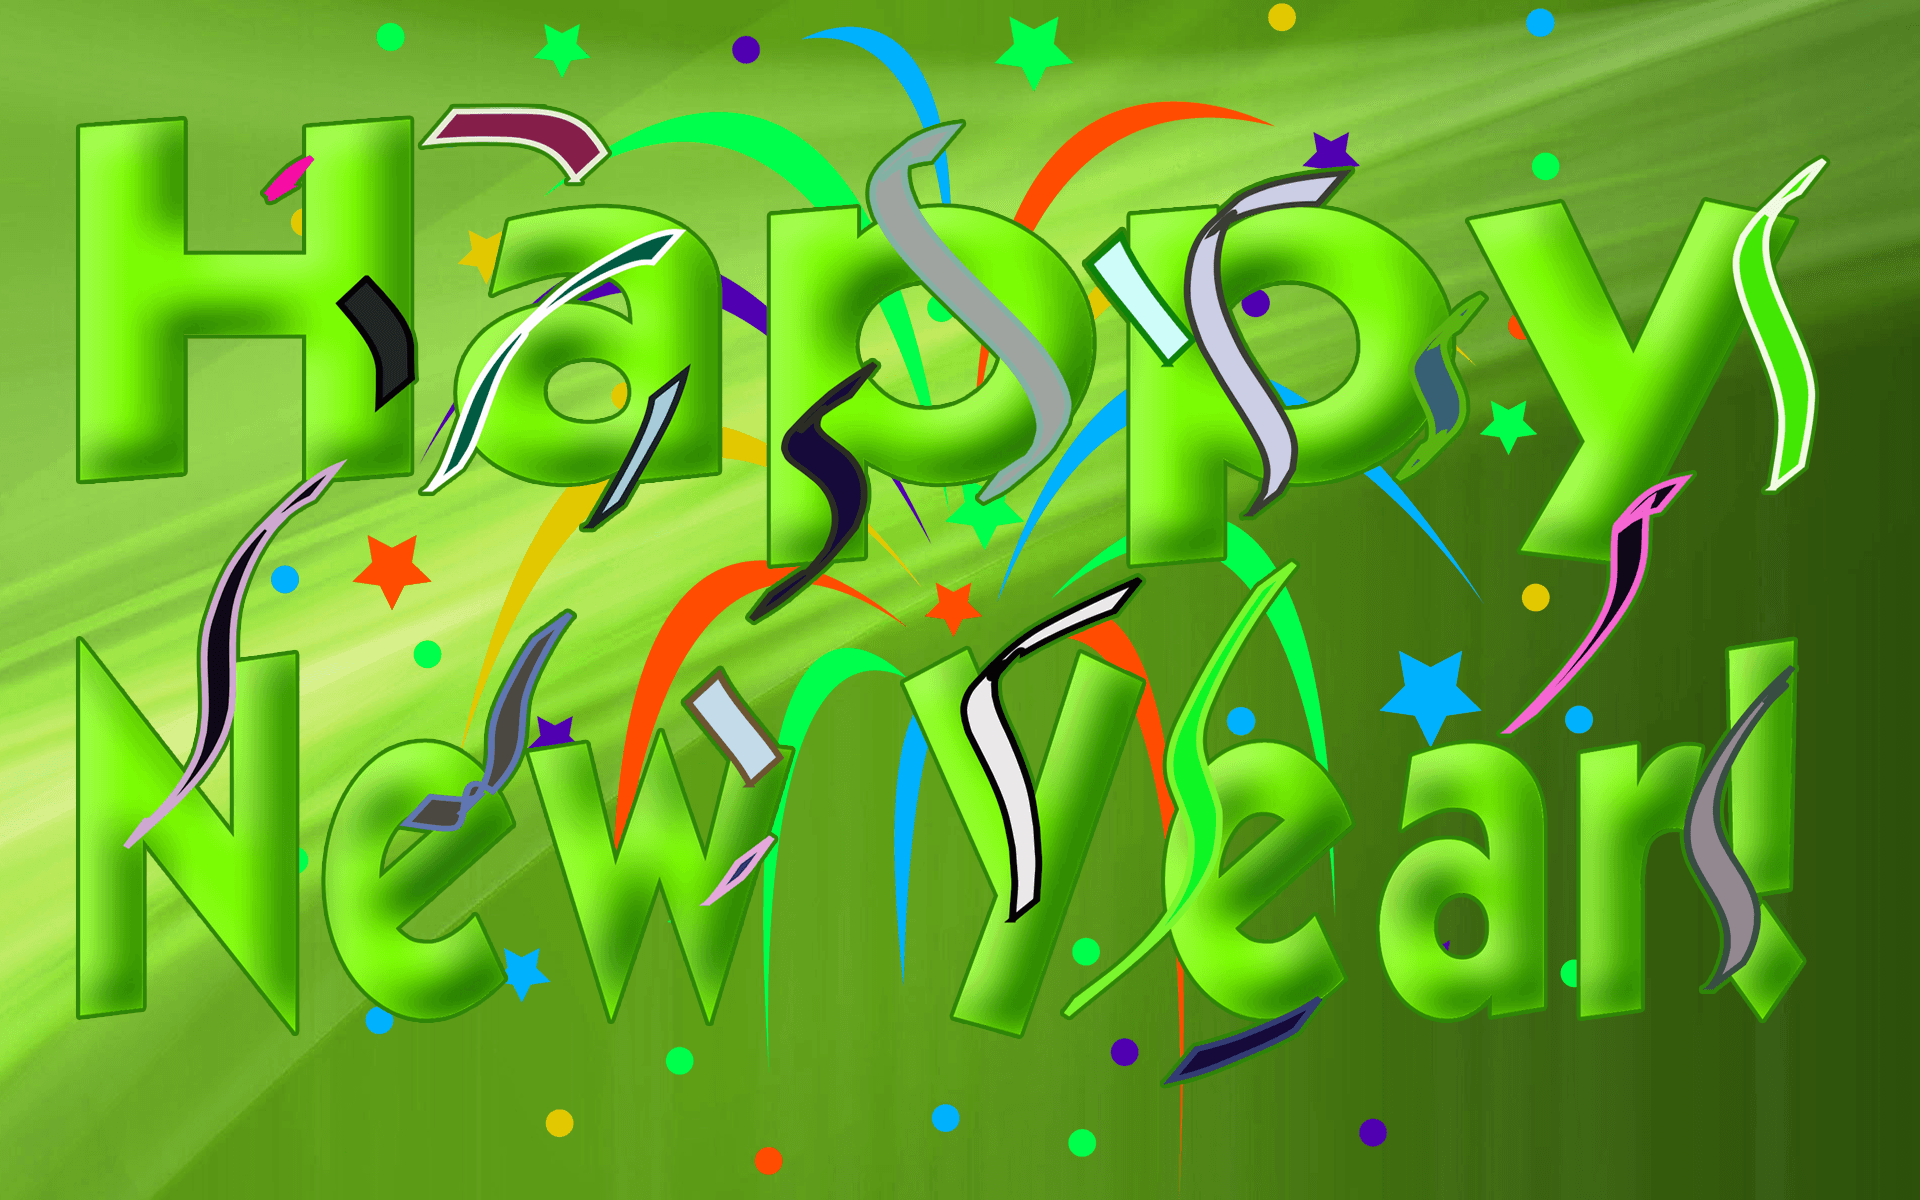 Wallpaper download new year - Happynewyear2017 Celebrate New Year 2017 With Free Download Happy